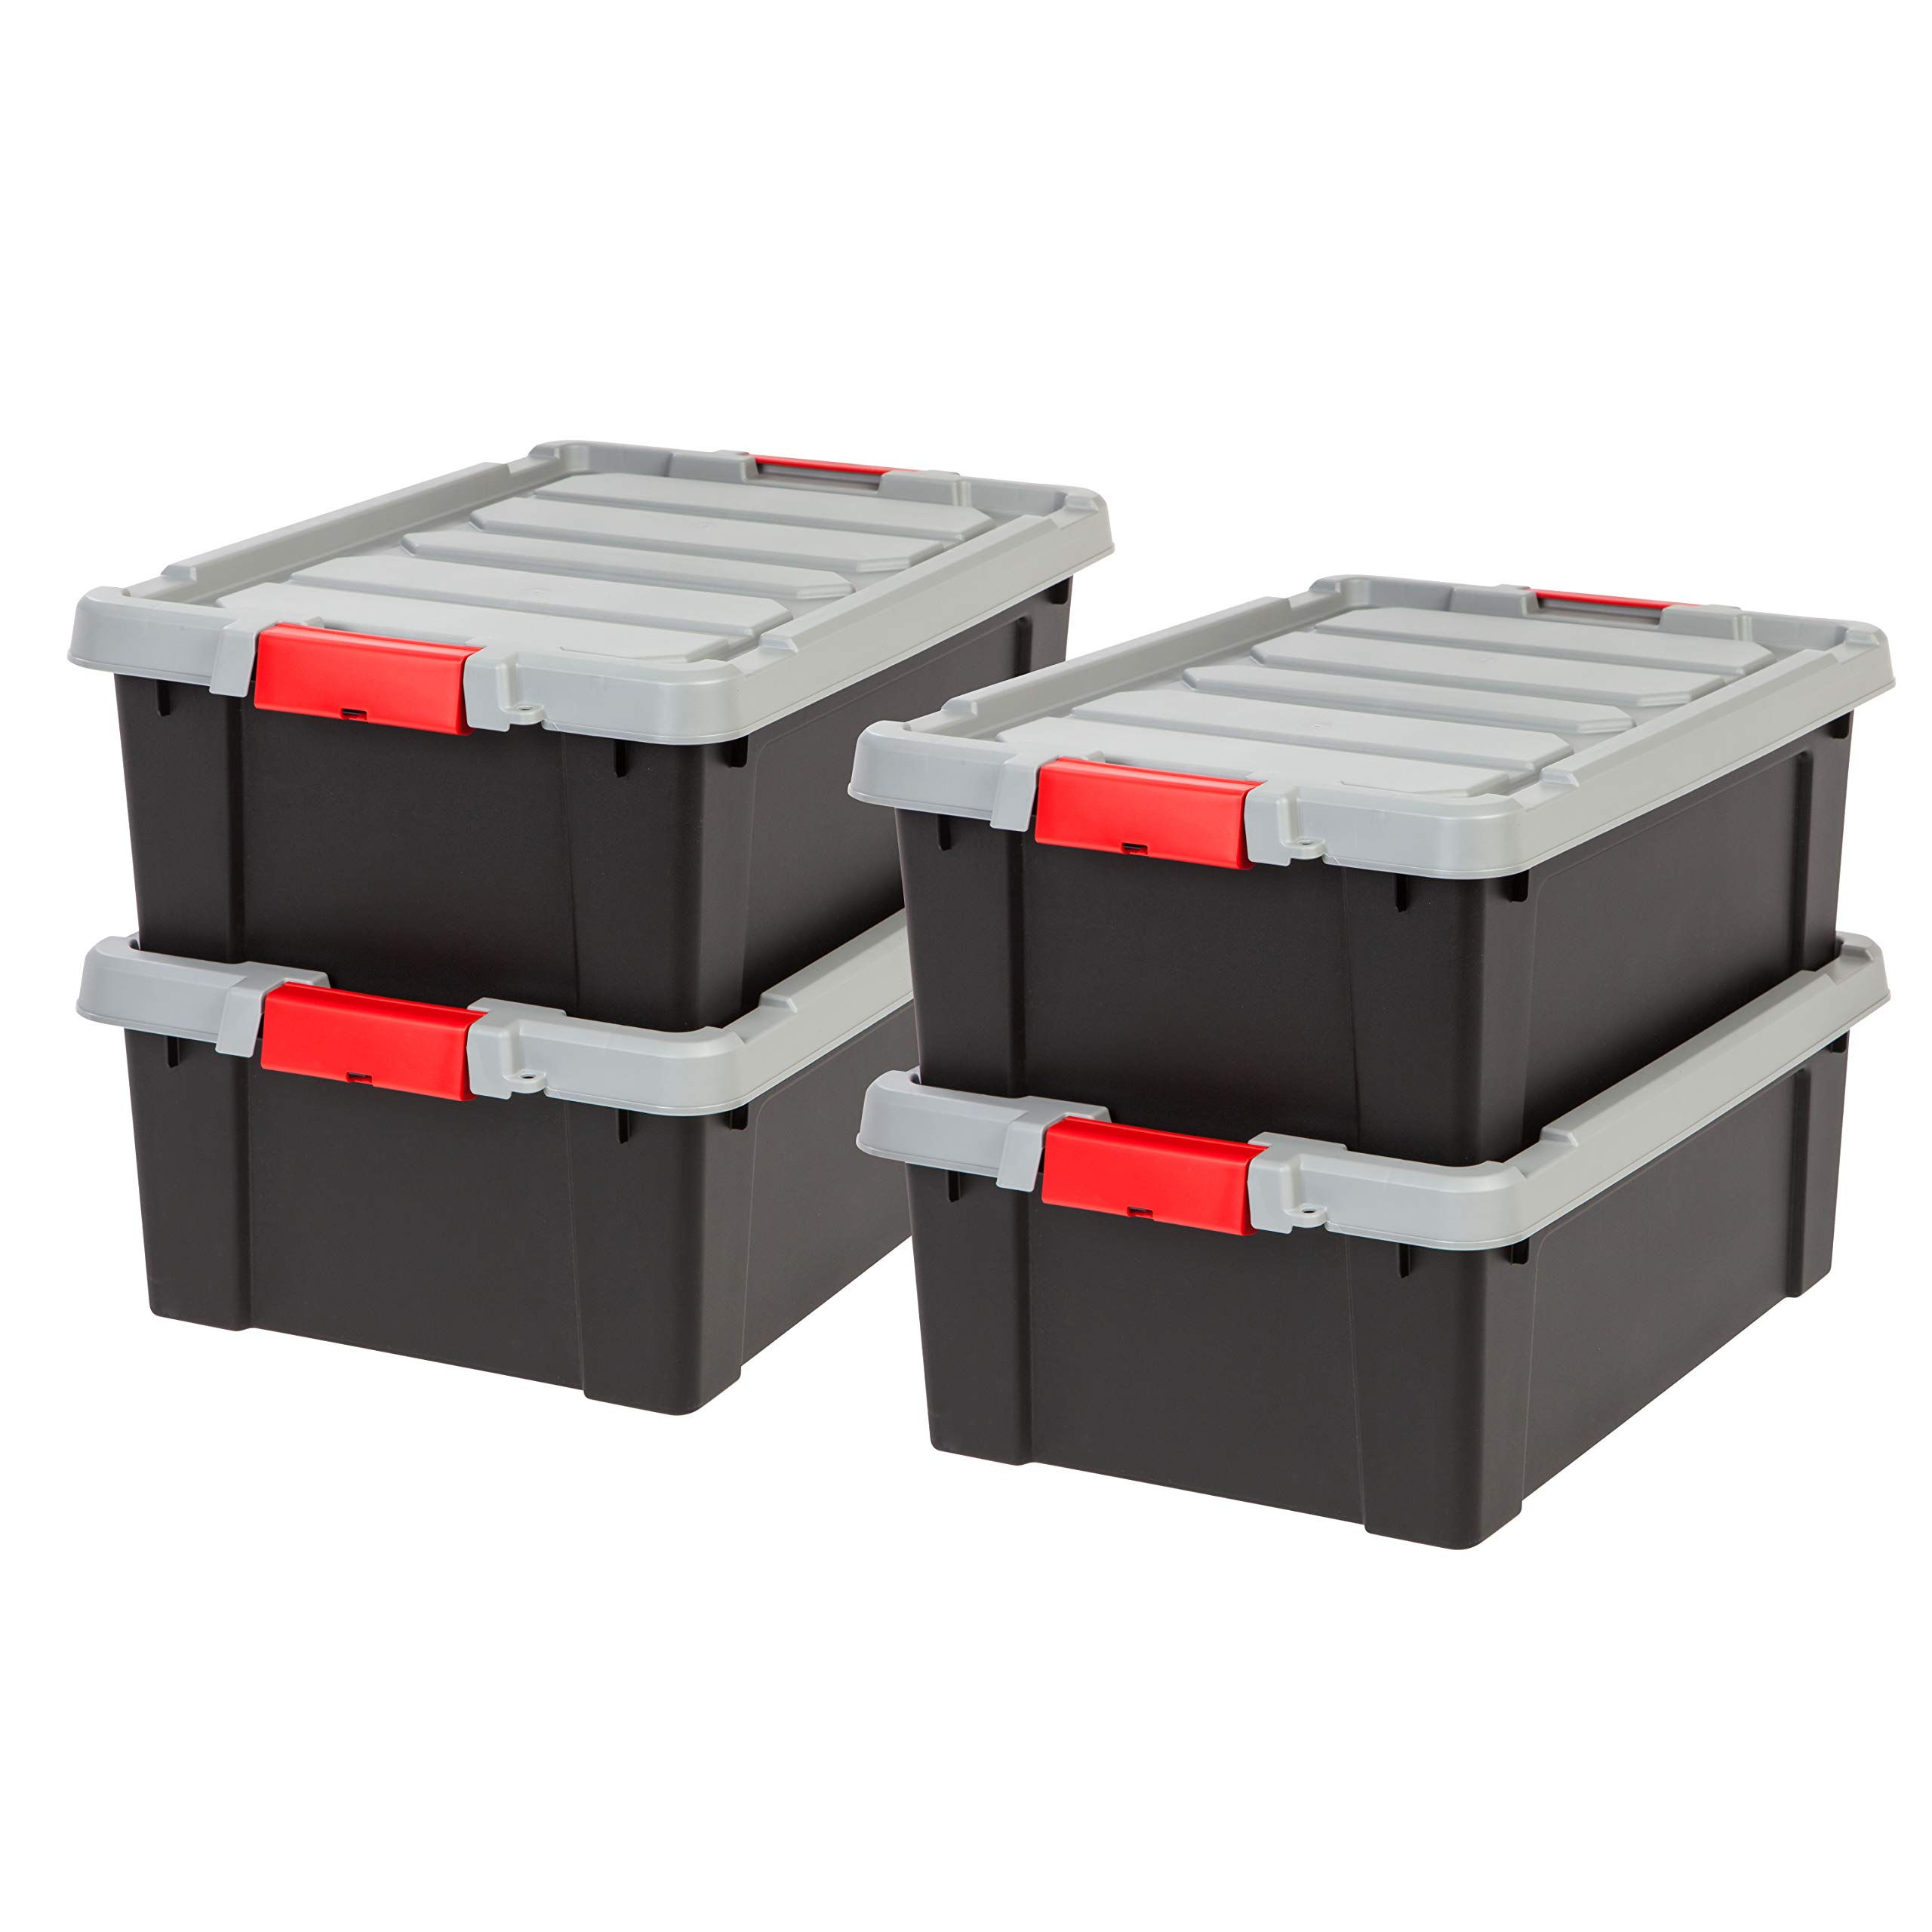 IRIS USA, Inc. SIA-10 Store-It-All Tote, 4 Pack, 11.75, Black/Red Buckle by IRIS USA, Inc.